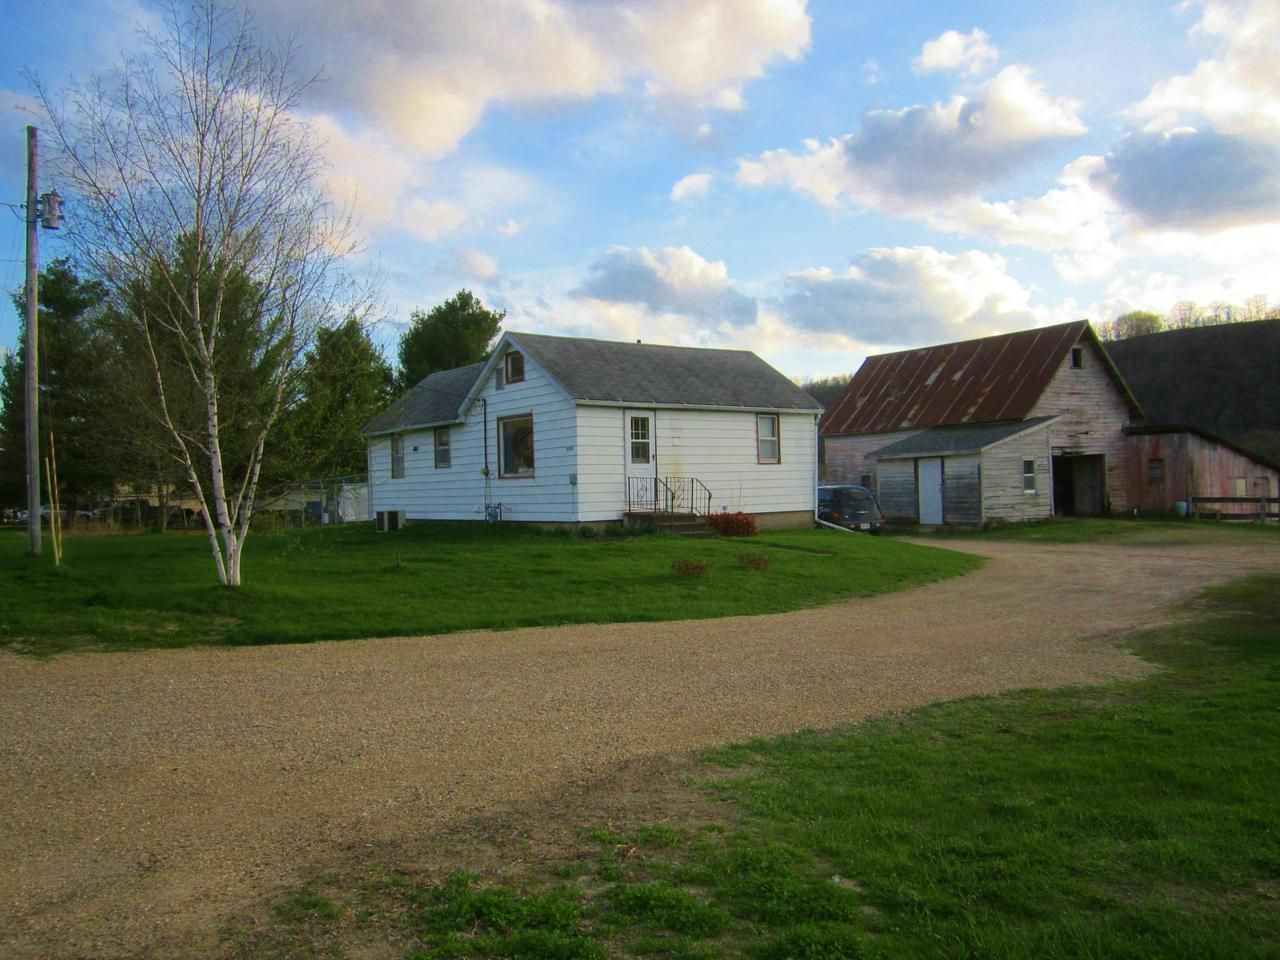 Hobby farm with frontage on the Kickapoo River.  Includes acreage that could be used for crops, a vegetable farm, cattle operation, or horses.  Enjoy fishing, swimming, canoeing, or camping by the river.  Additional acreage available.